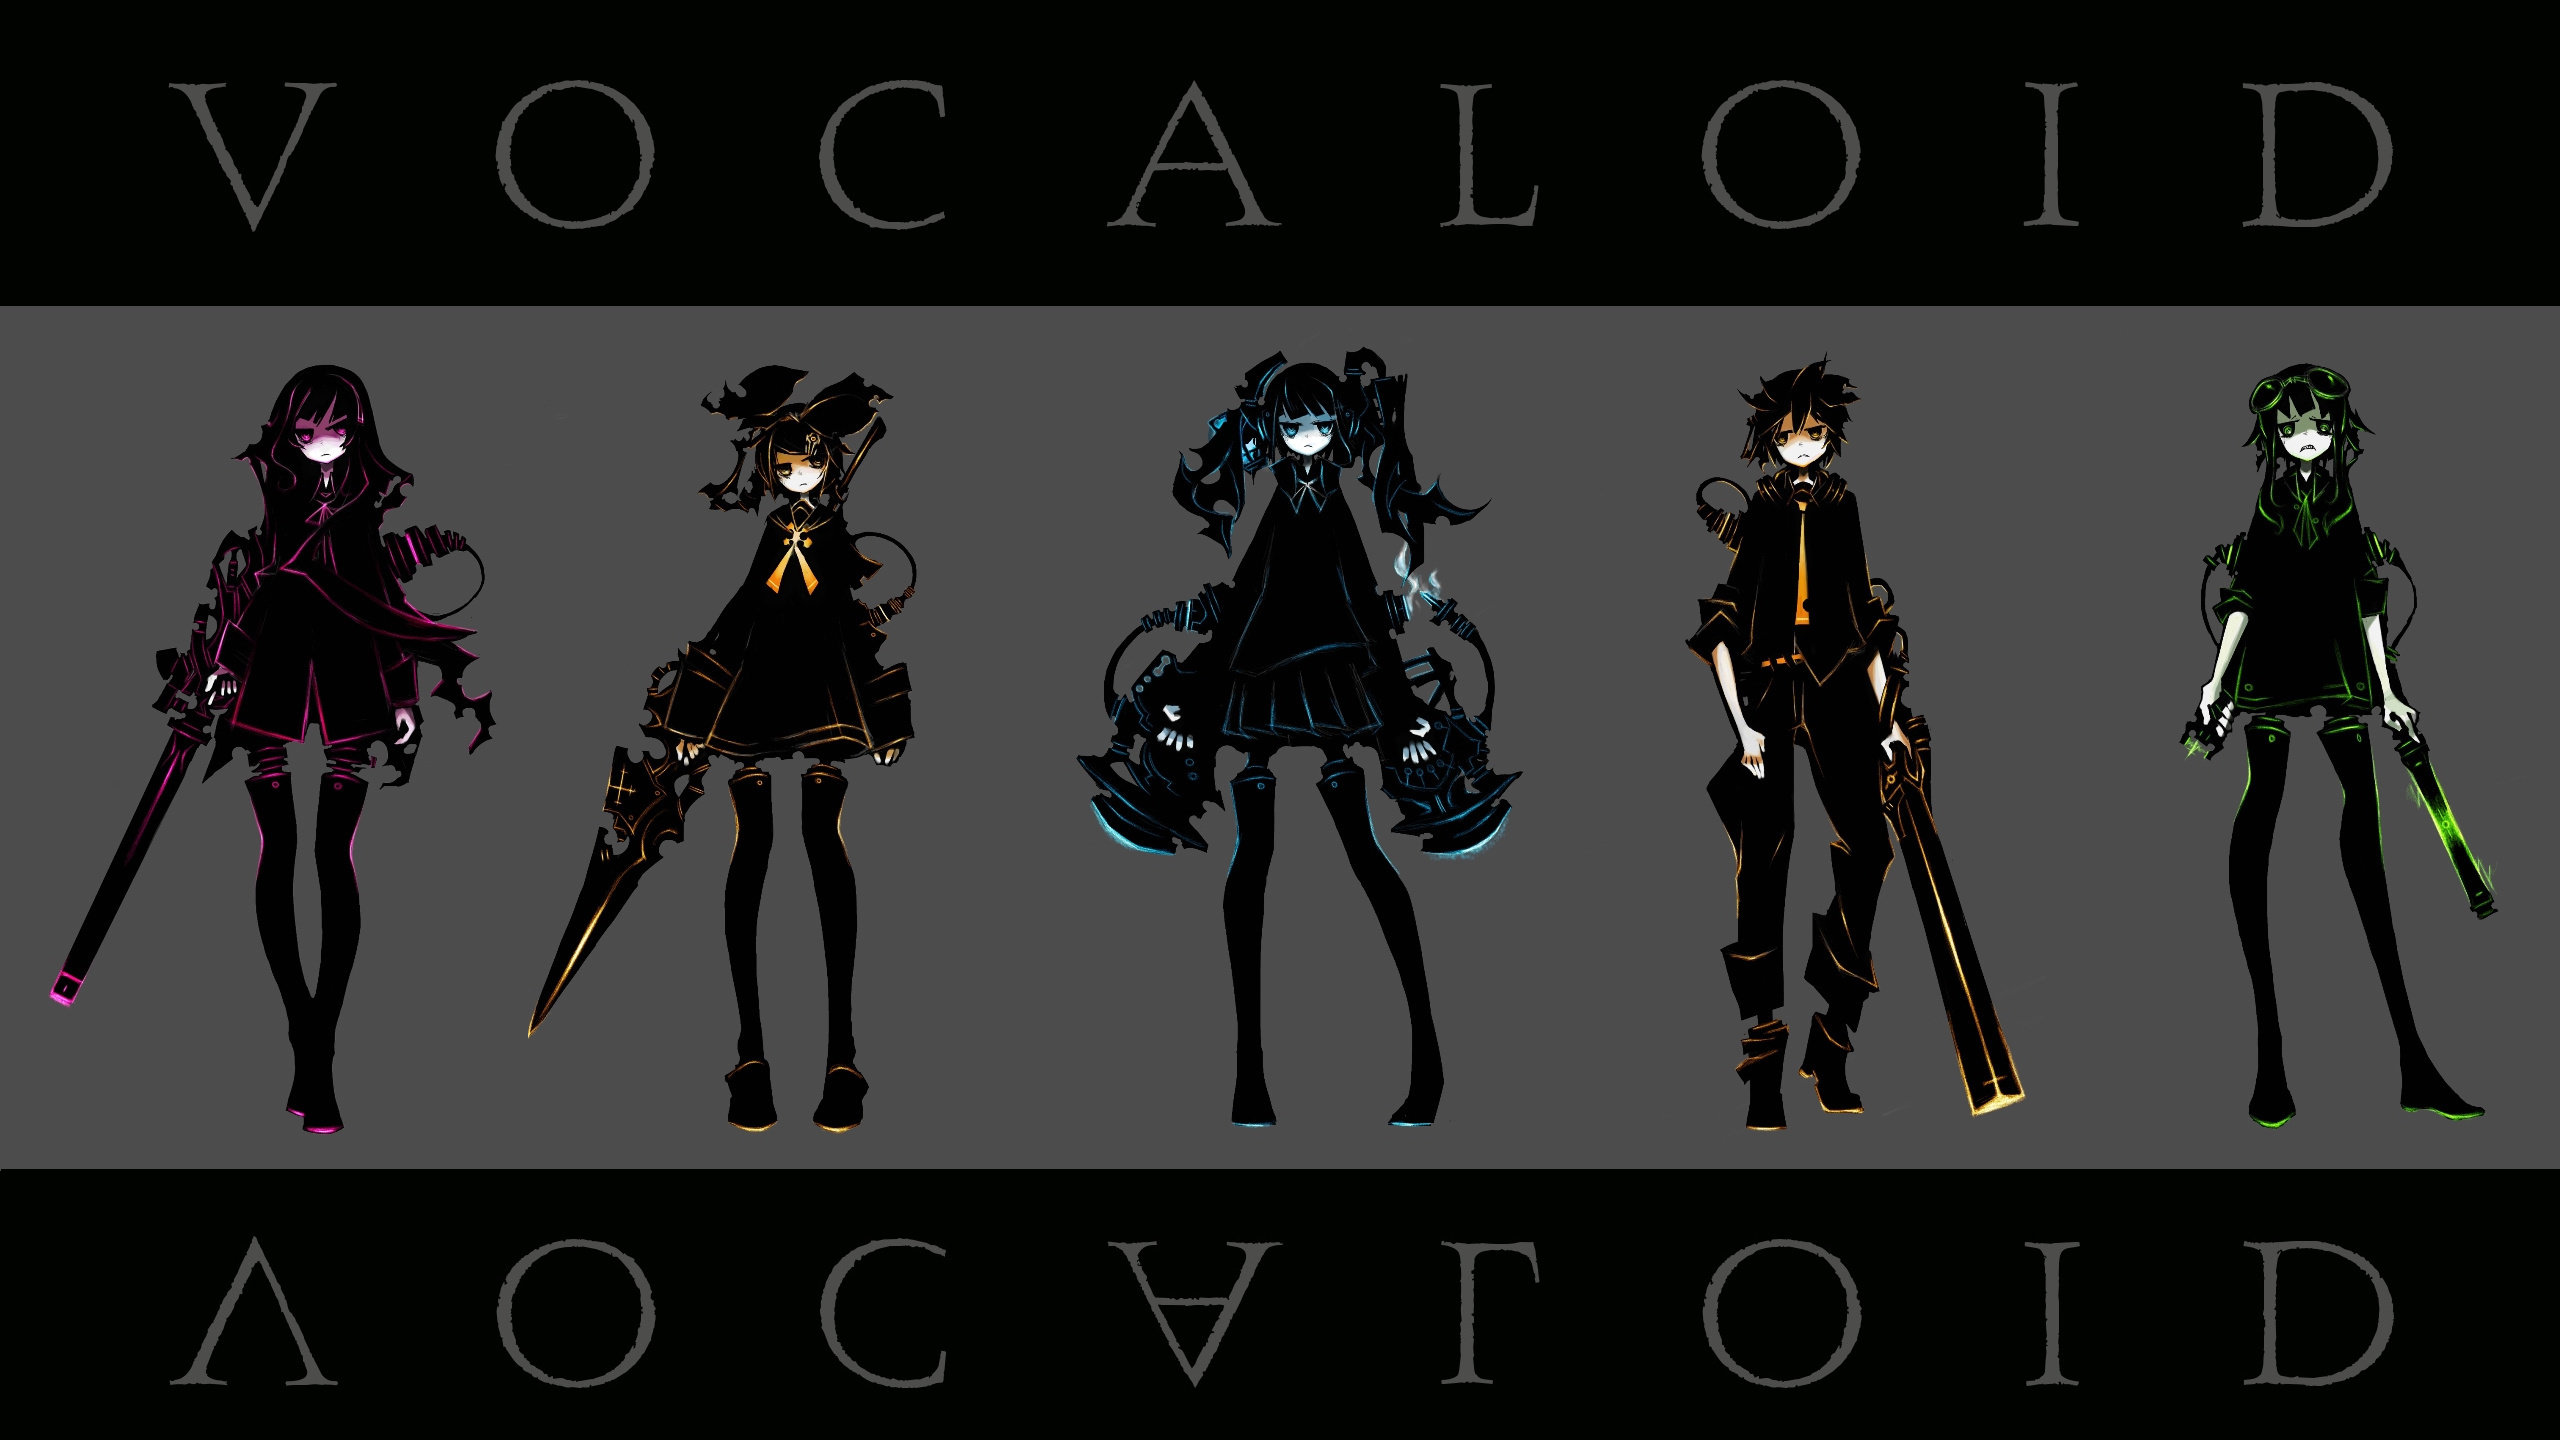 Free download Vocaloid wallpaper ID:1069 hd 2560x1440 for desktop